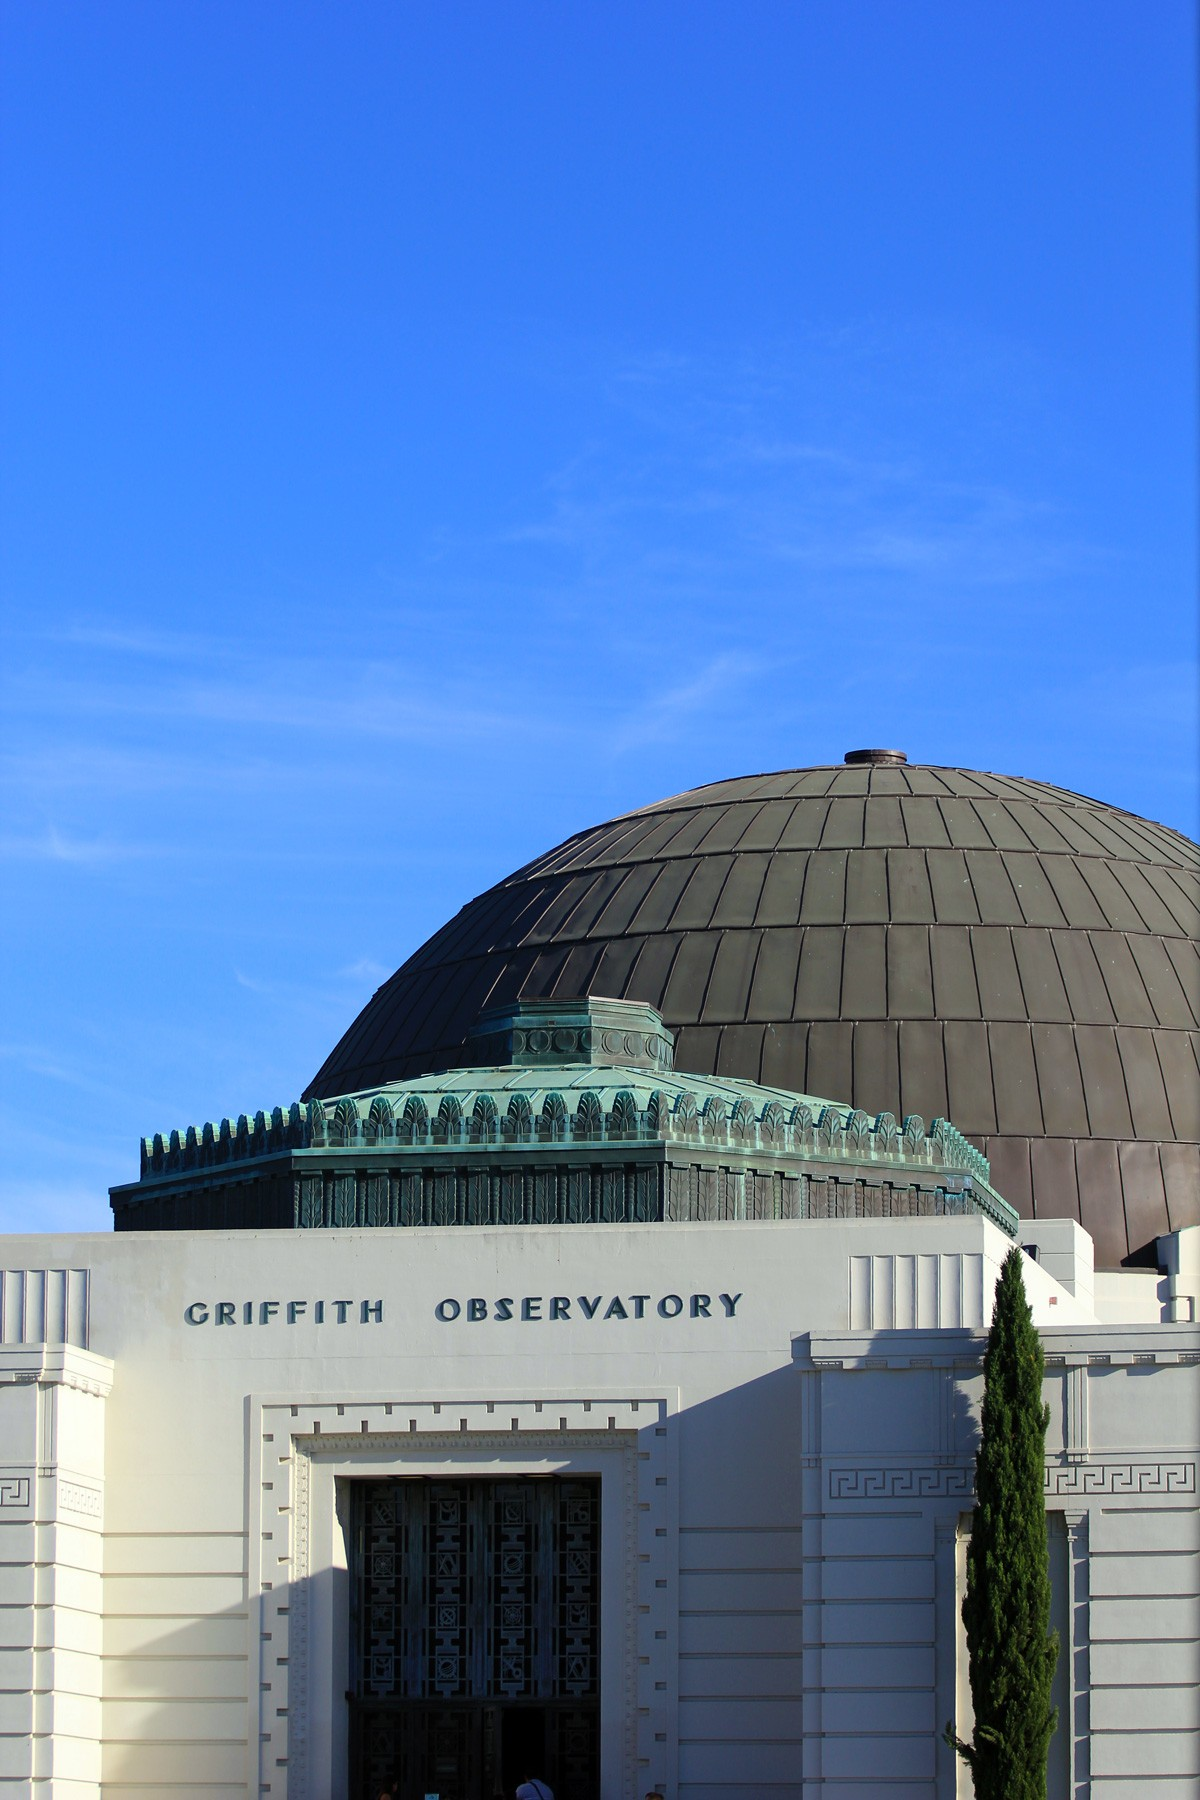 Casual_And_Stylish_Look_For_My_Visit_To_The_Griffith_Observatory_12